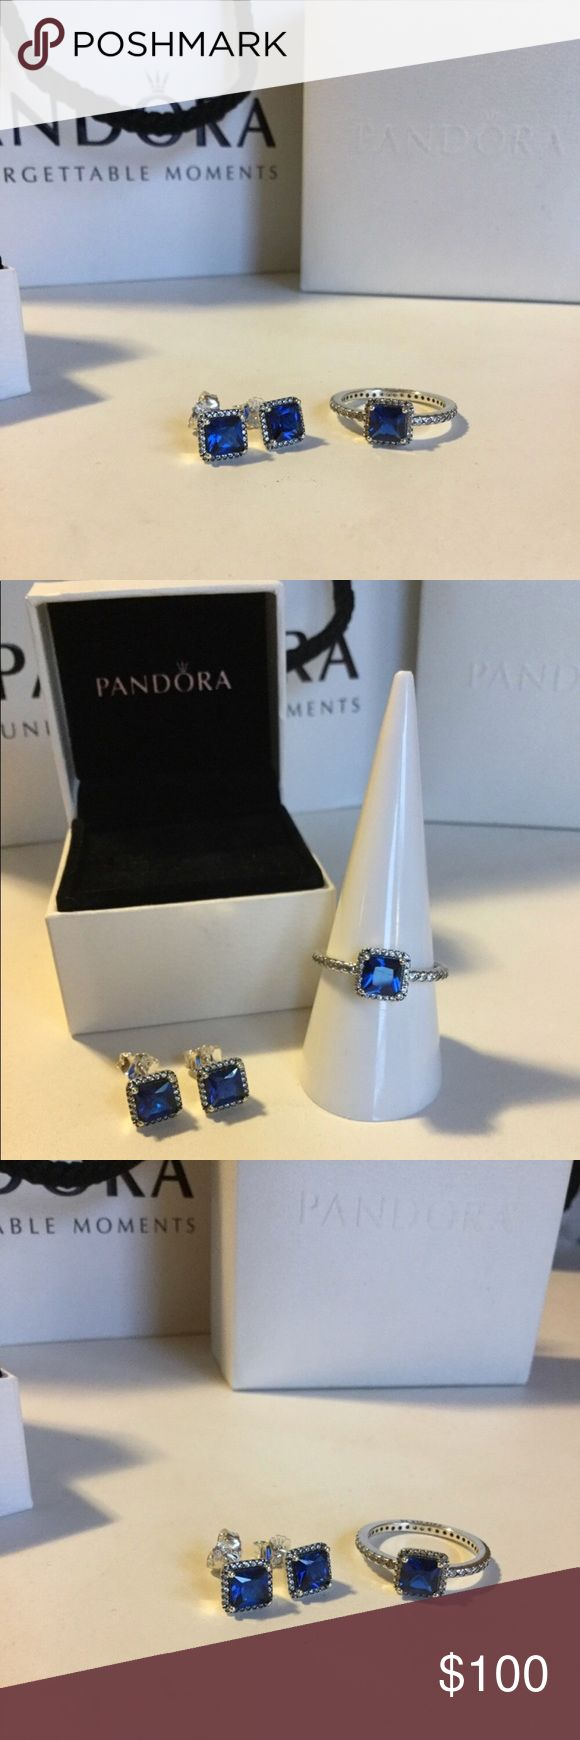 Pandora Timeless Elegance True Blue Set Pandora Timeless Elegance True Blue Crystal Ring and Earrings set.  Size 7 ring.   Included:  Pandora Elegance True Blue Crystal Earrings ($85 original $) and Pandora Elegance True Blue Crystal Ring ($76 original $) - size 7/54 Retails for $160 plus tax in stores.  Make an offer! Pandora Jewelry Rings